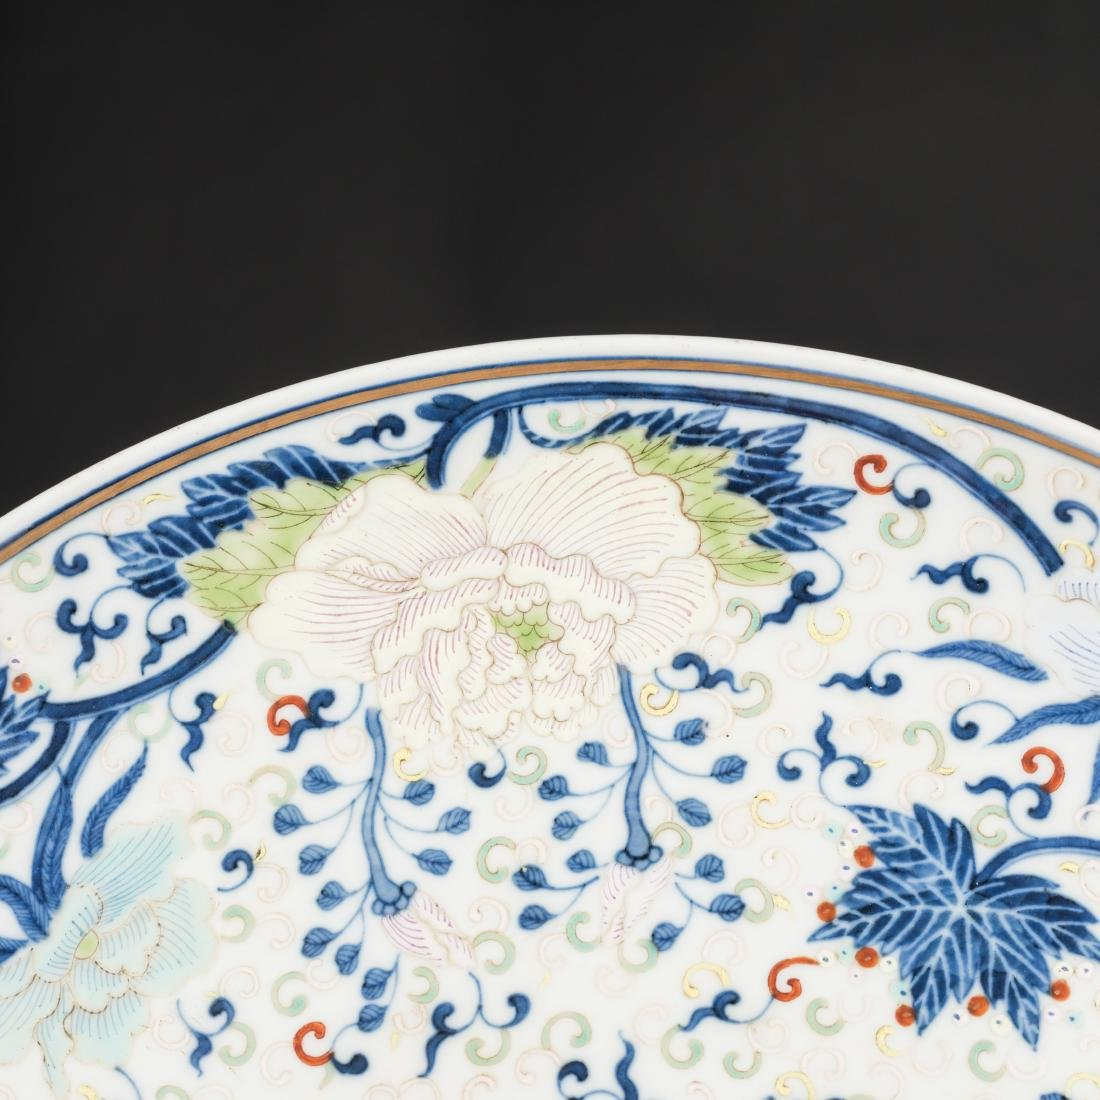 19th Antique Famille Rose Plate - 6